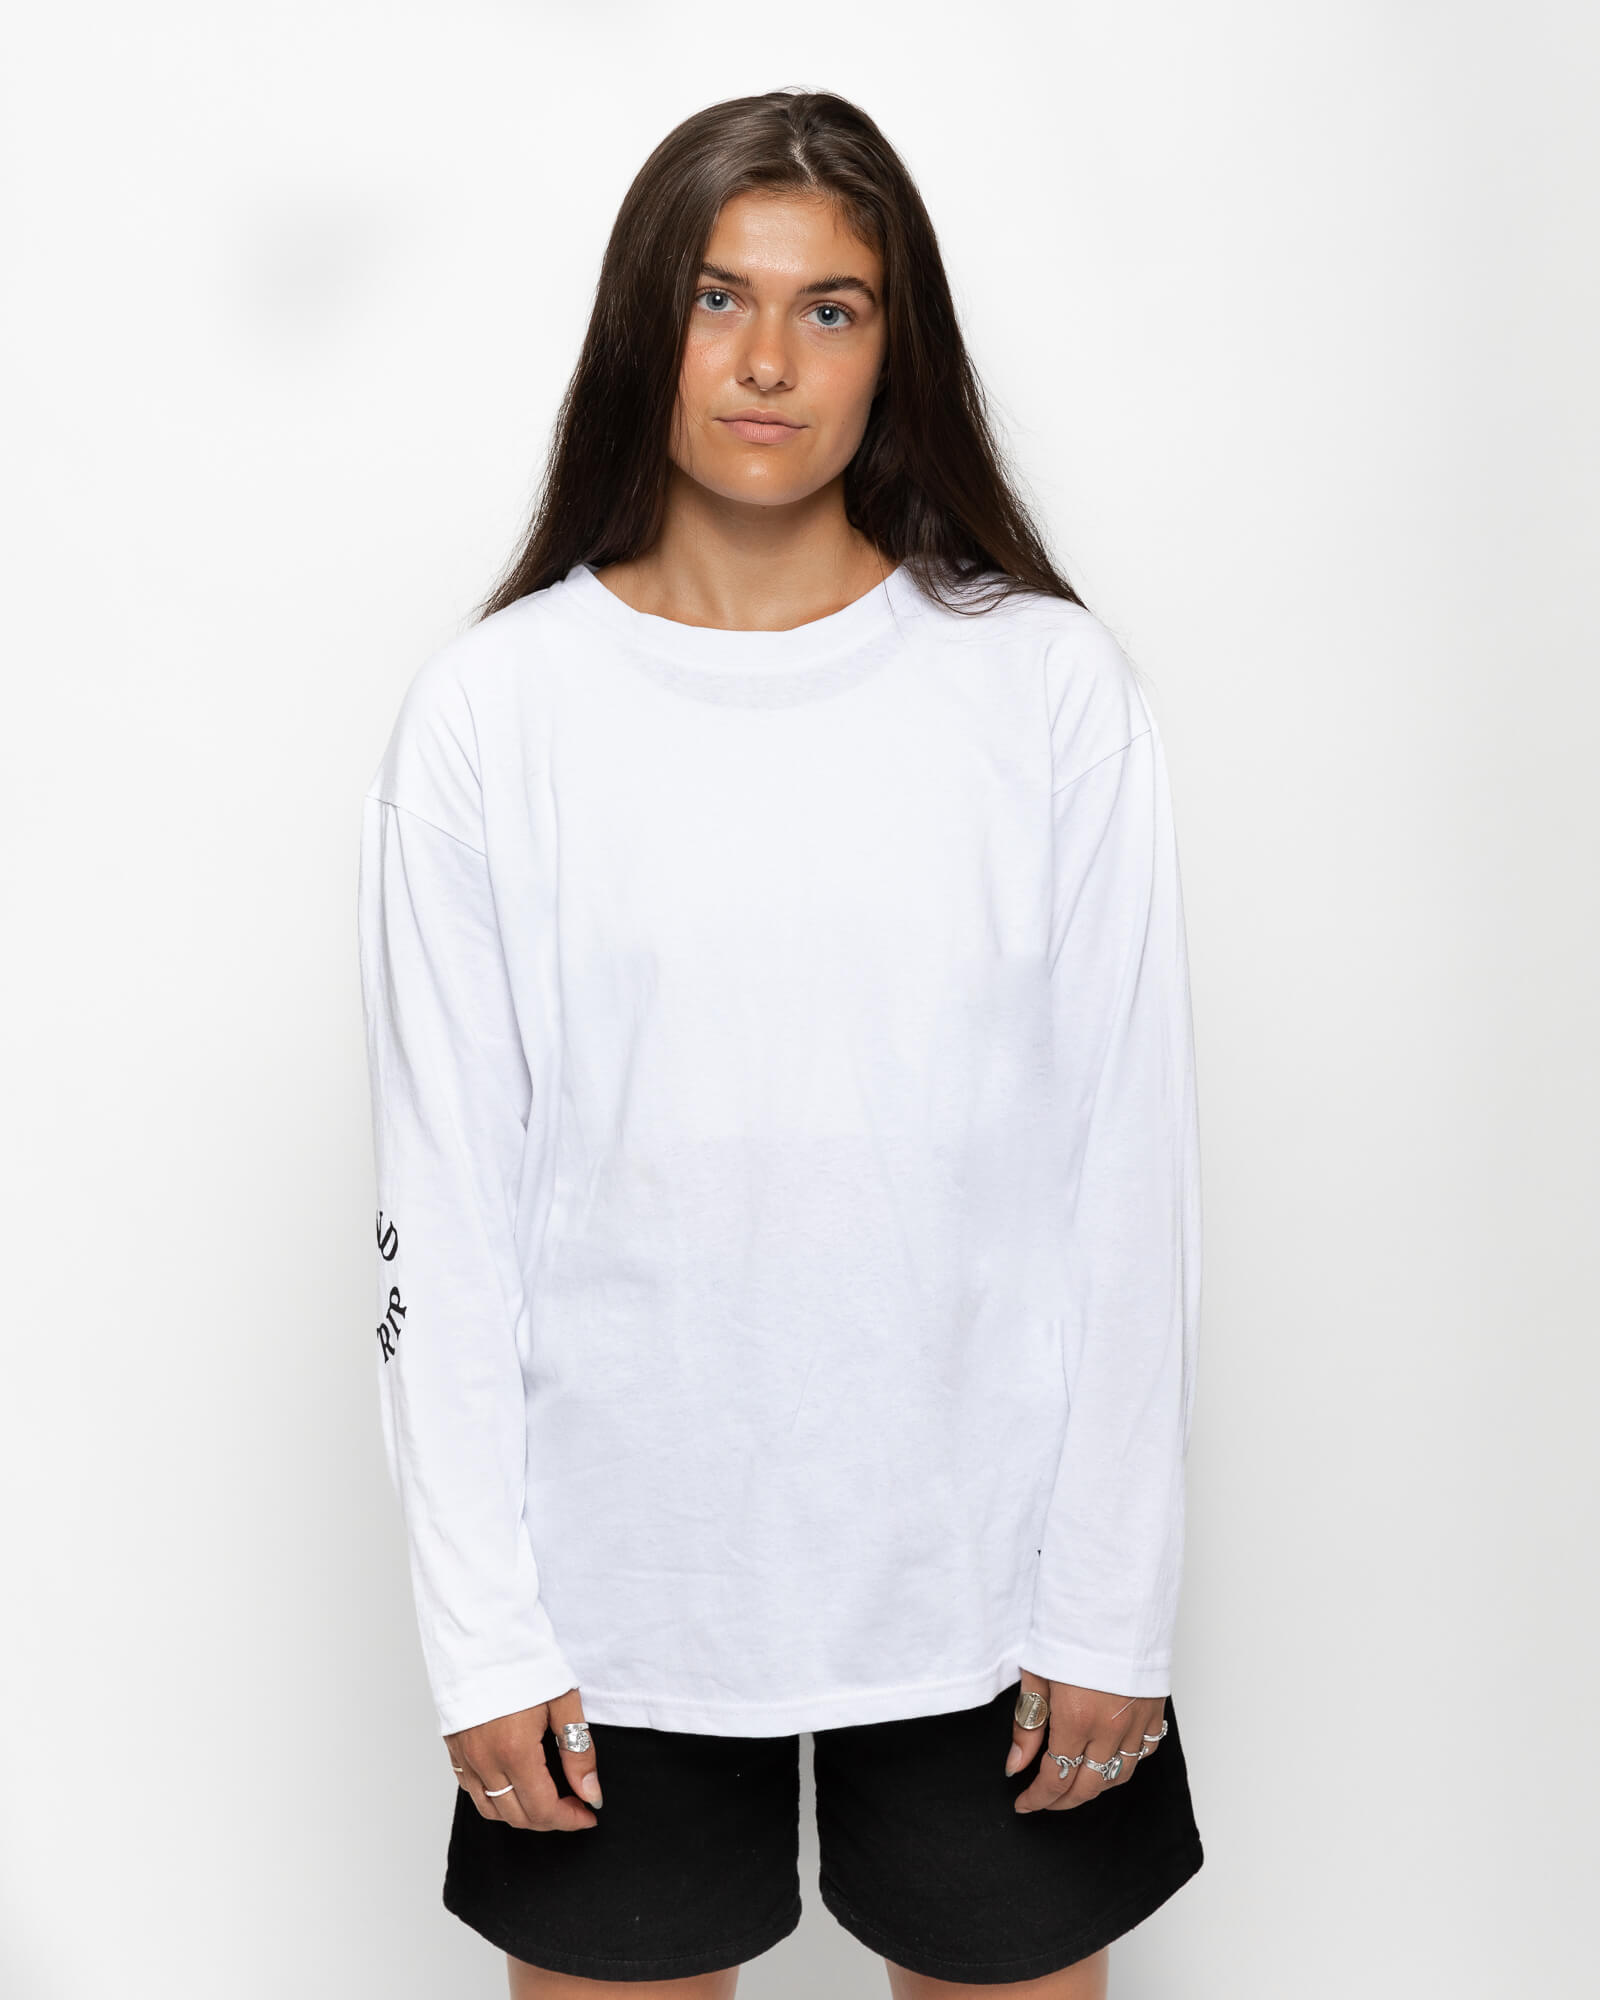 front view of a female model wearing the white round trip longsleeve with black shorts